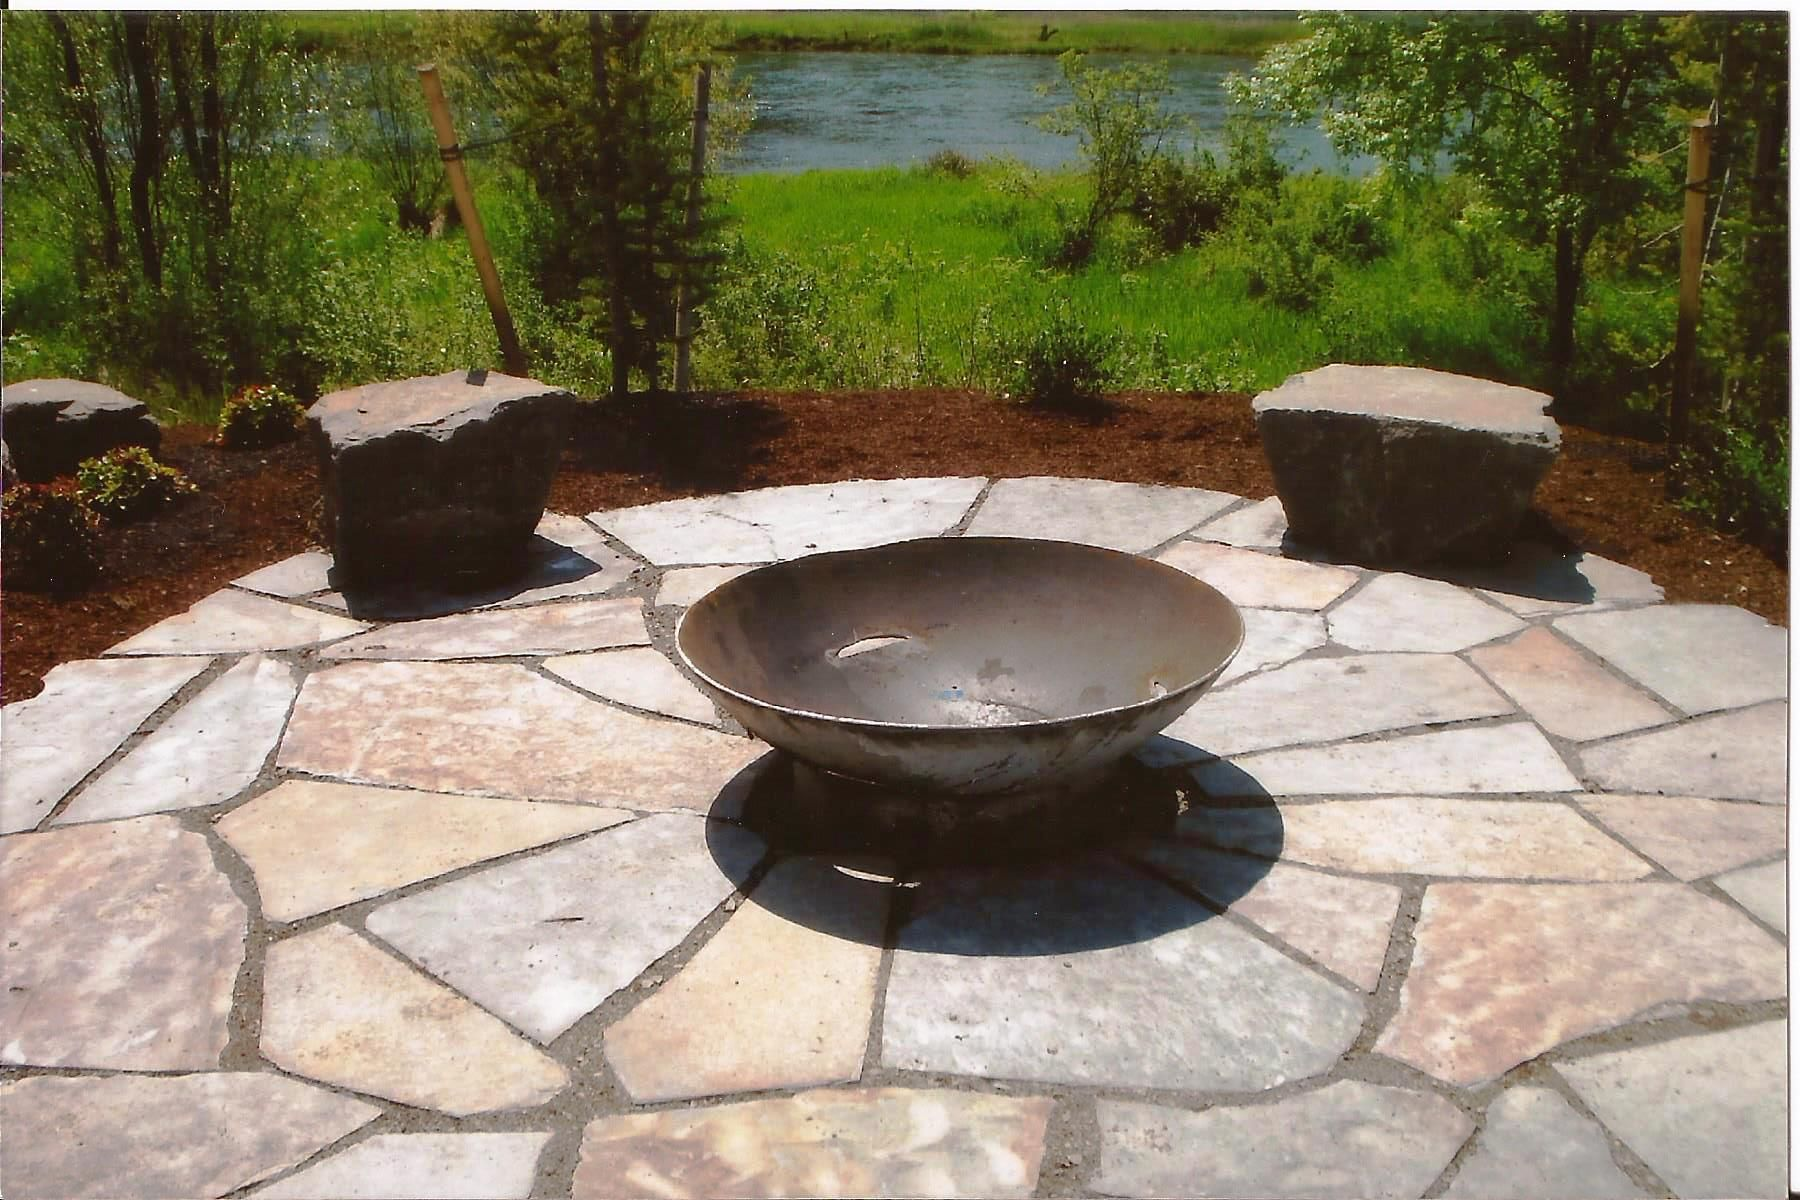 marvelous backyard pavers designs patterns and pictures interesting large bowl fire paver design ideas - Paver Design Ideas